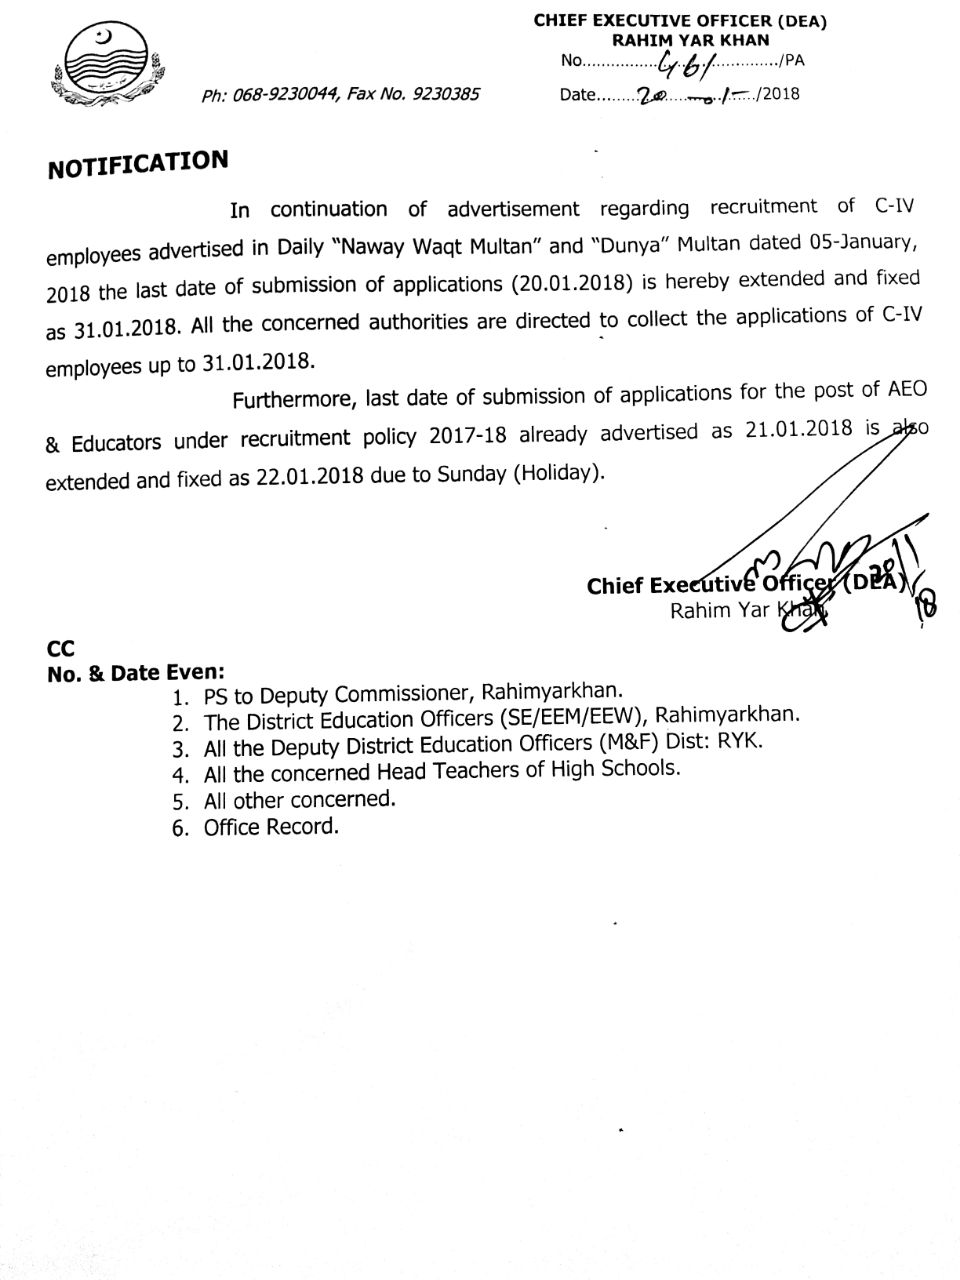 EDUCATORS AEO AND CLASS 4 SUBMISSION OF APPLICATIONS DATE EXTENDED